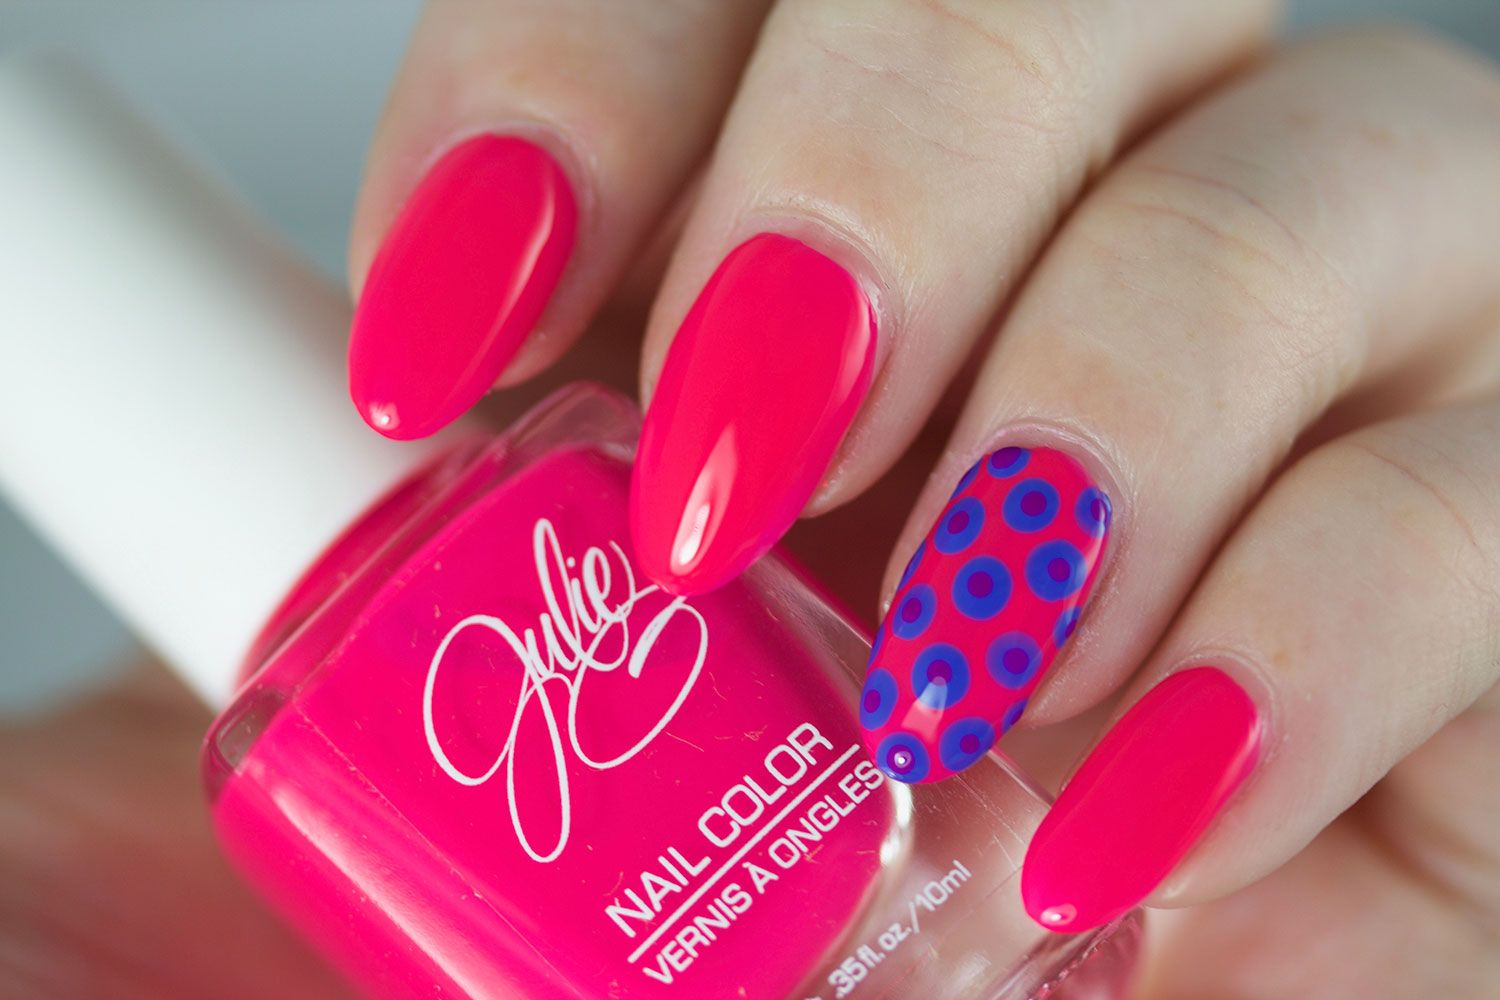 The Daily Nail: Jesse's Girl Julie G Spring 3-Pack - Set 3 Swatches